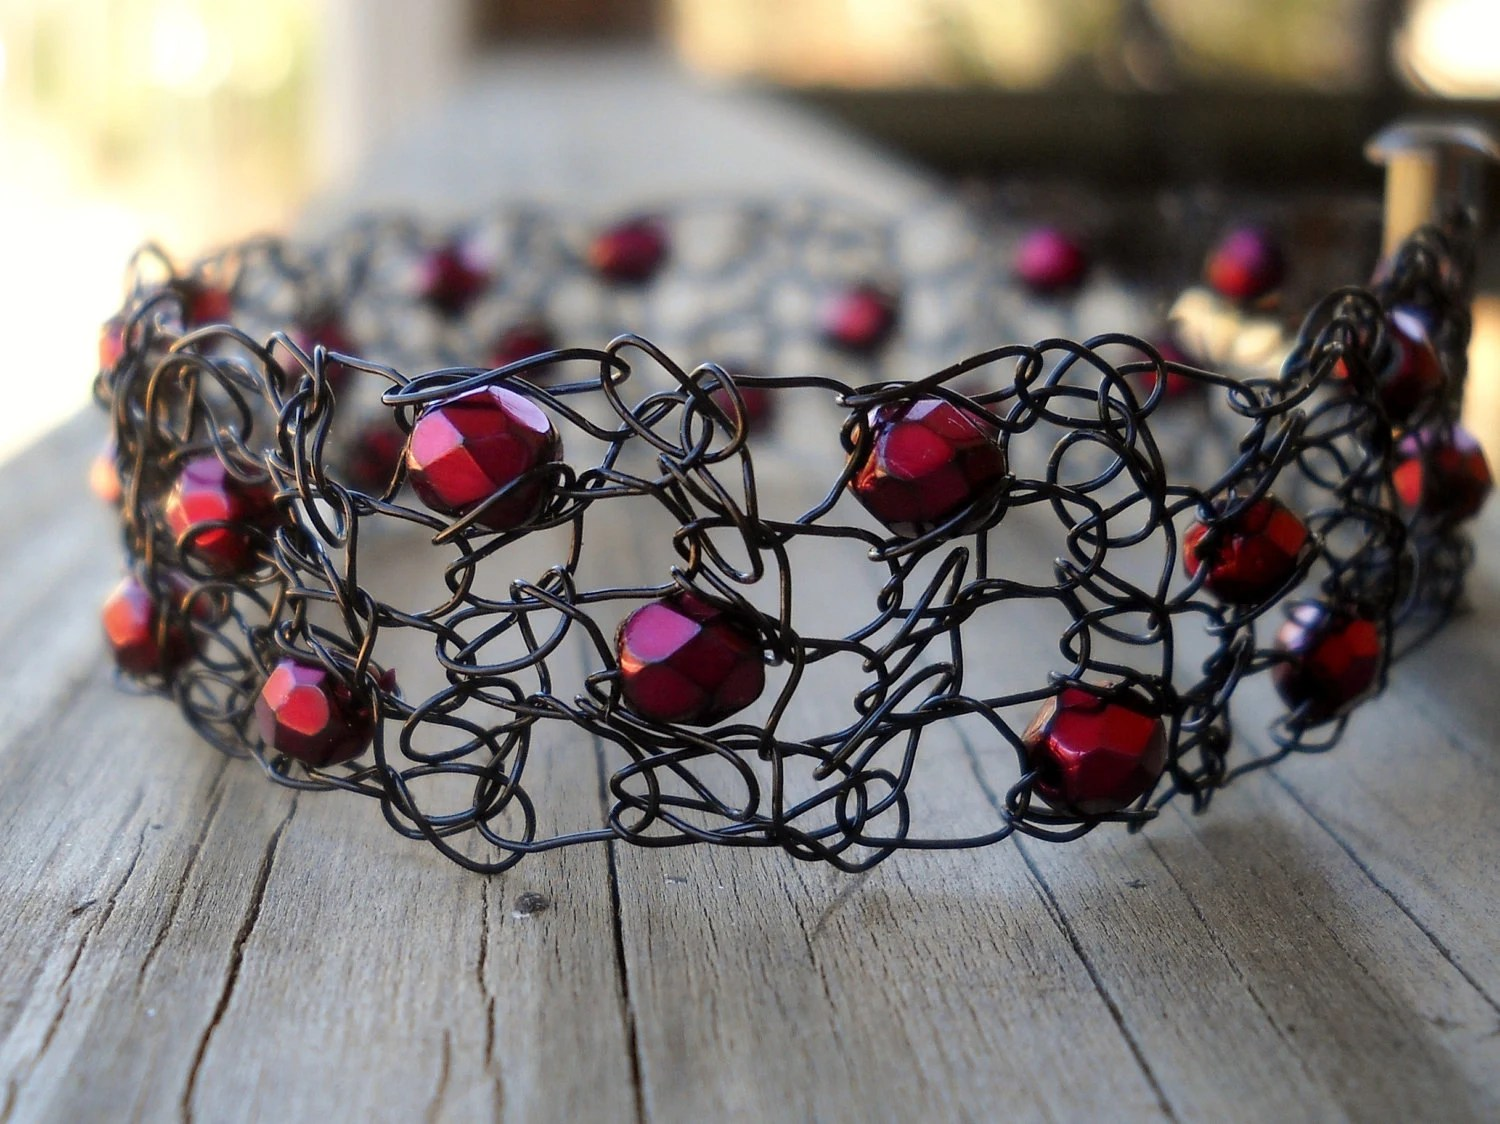 Hot Fiery Red Cinder and Black Wired Crochet Bracelet Crystal Matching Earrings Available - MegsCrochetJewels